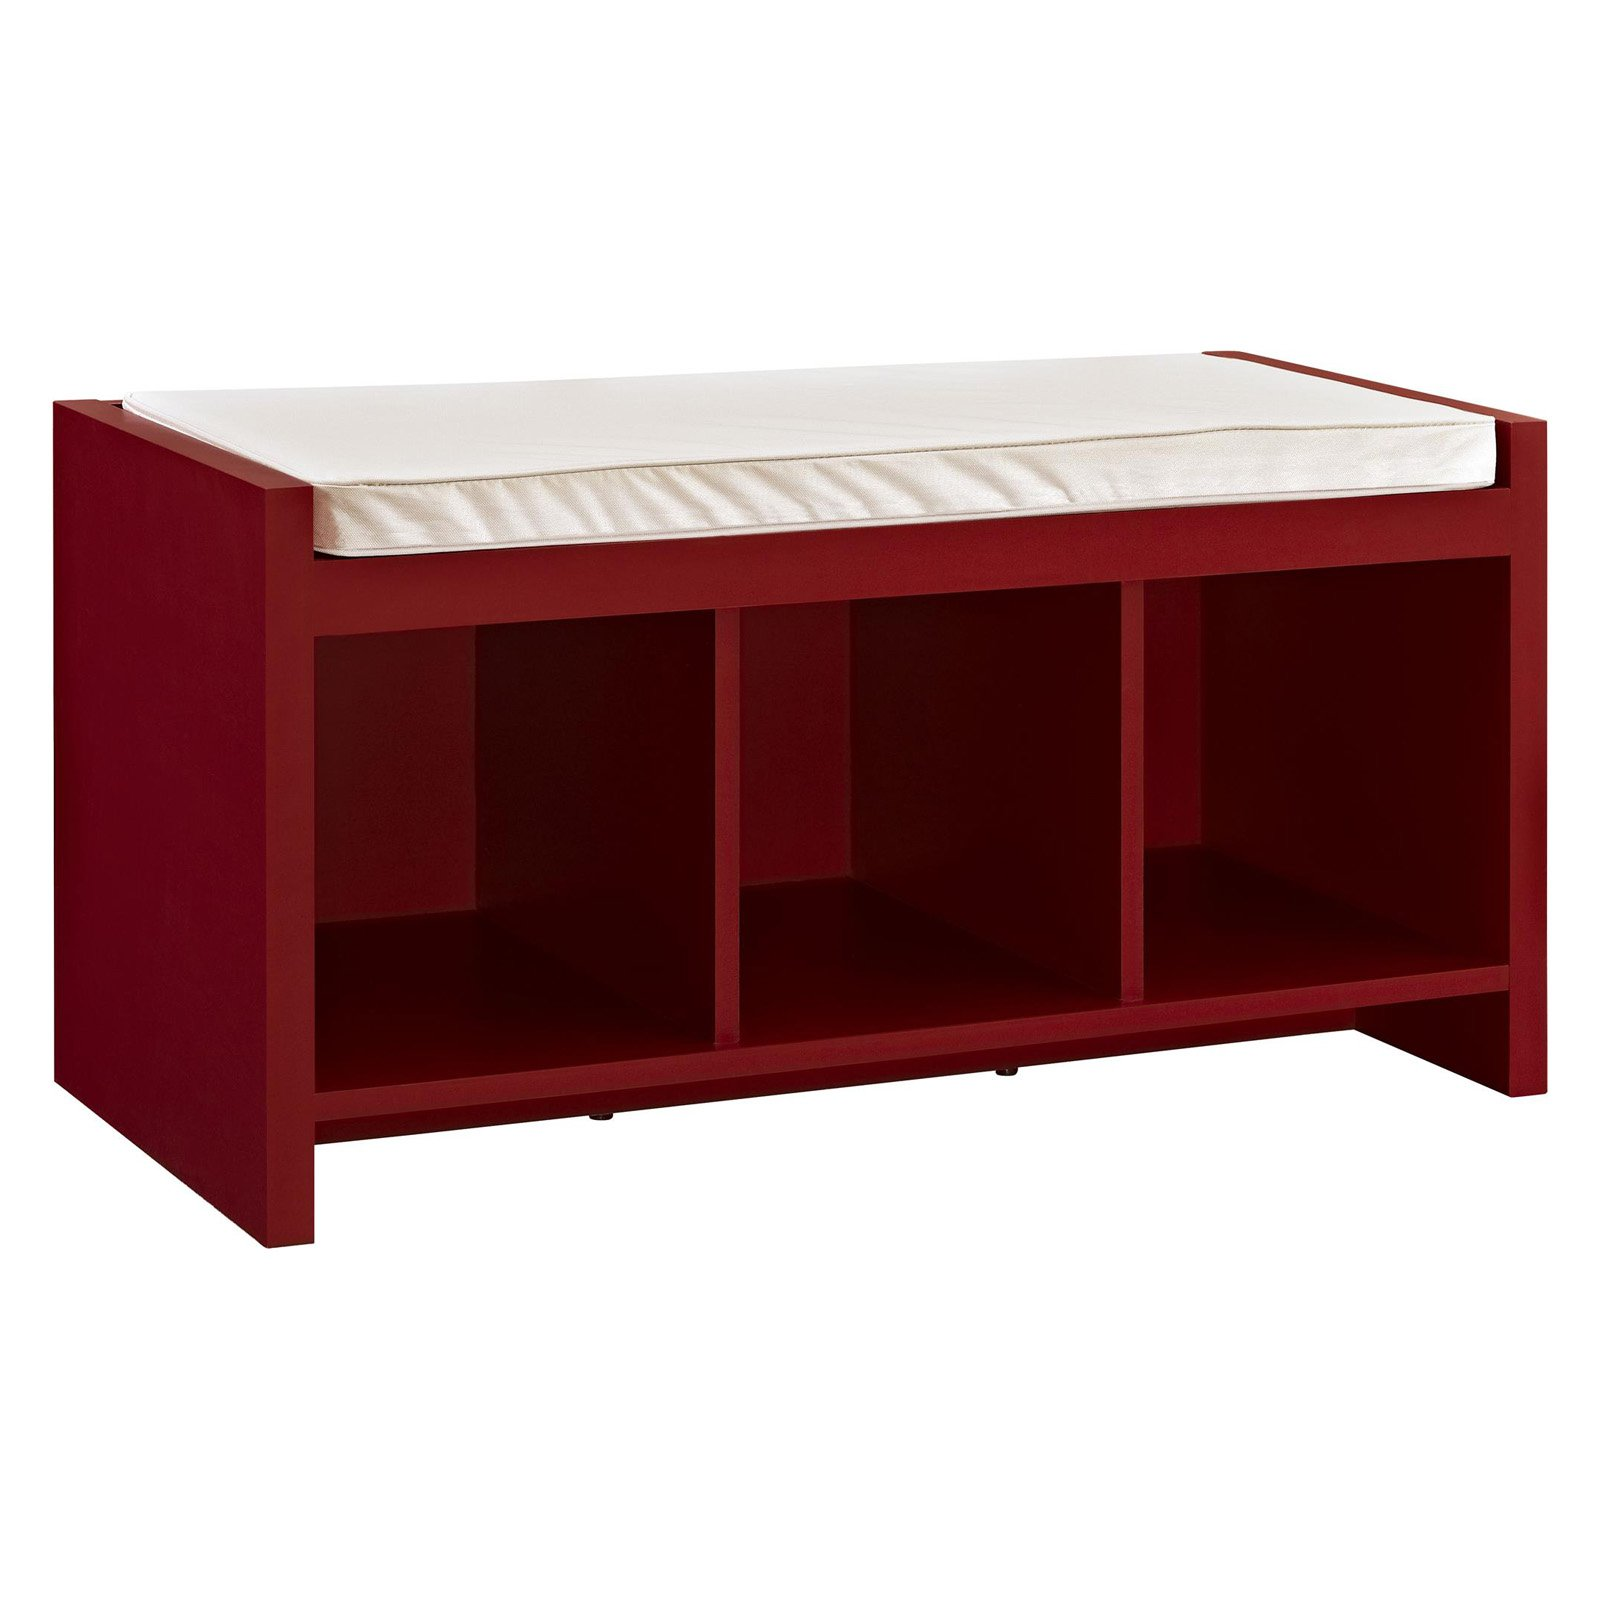 ameriwood home altra penelope entryway storage bench with cushion